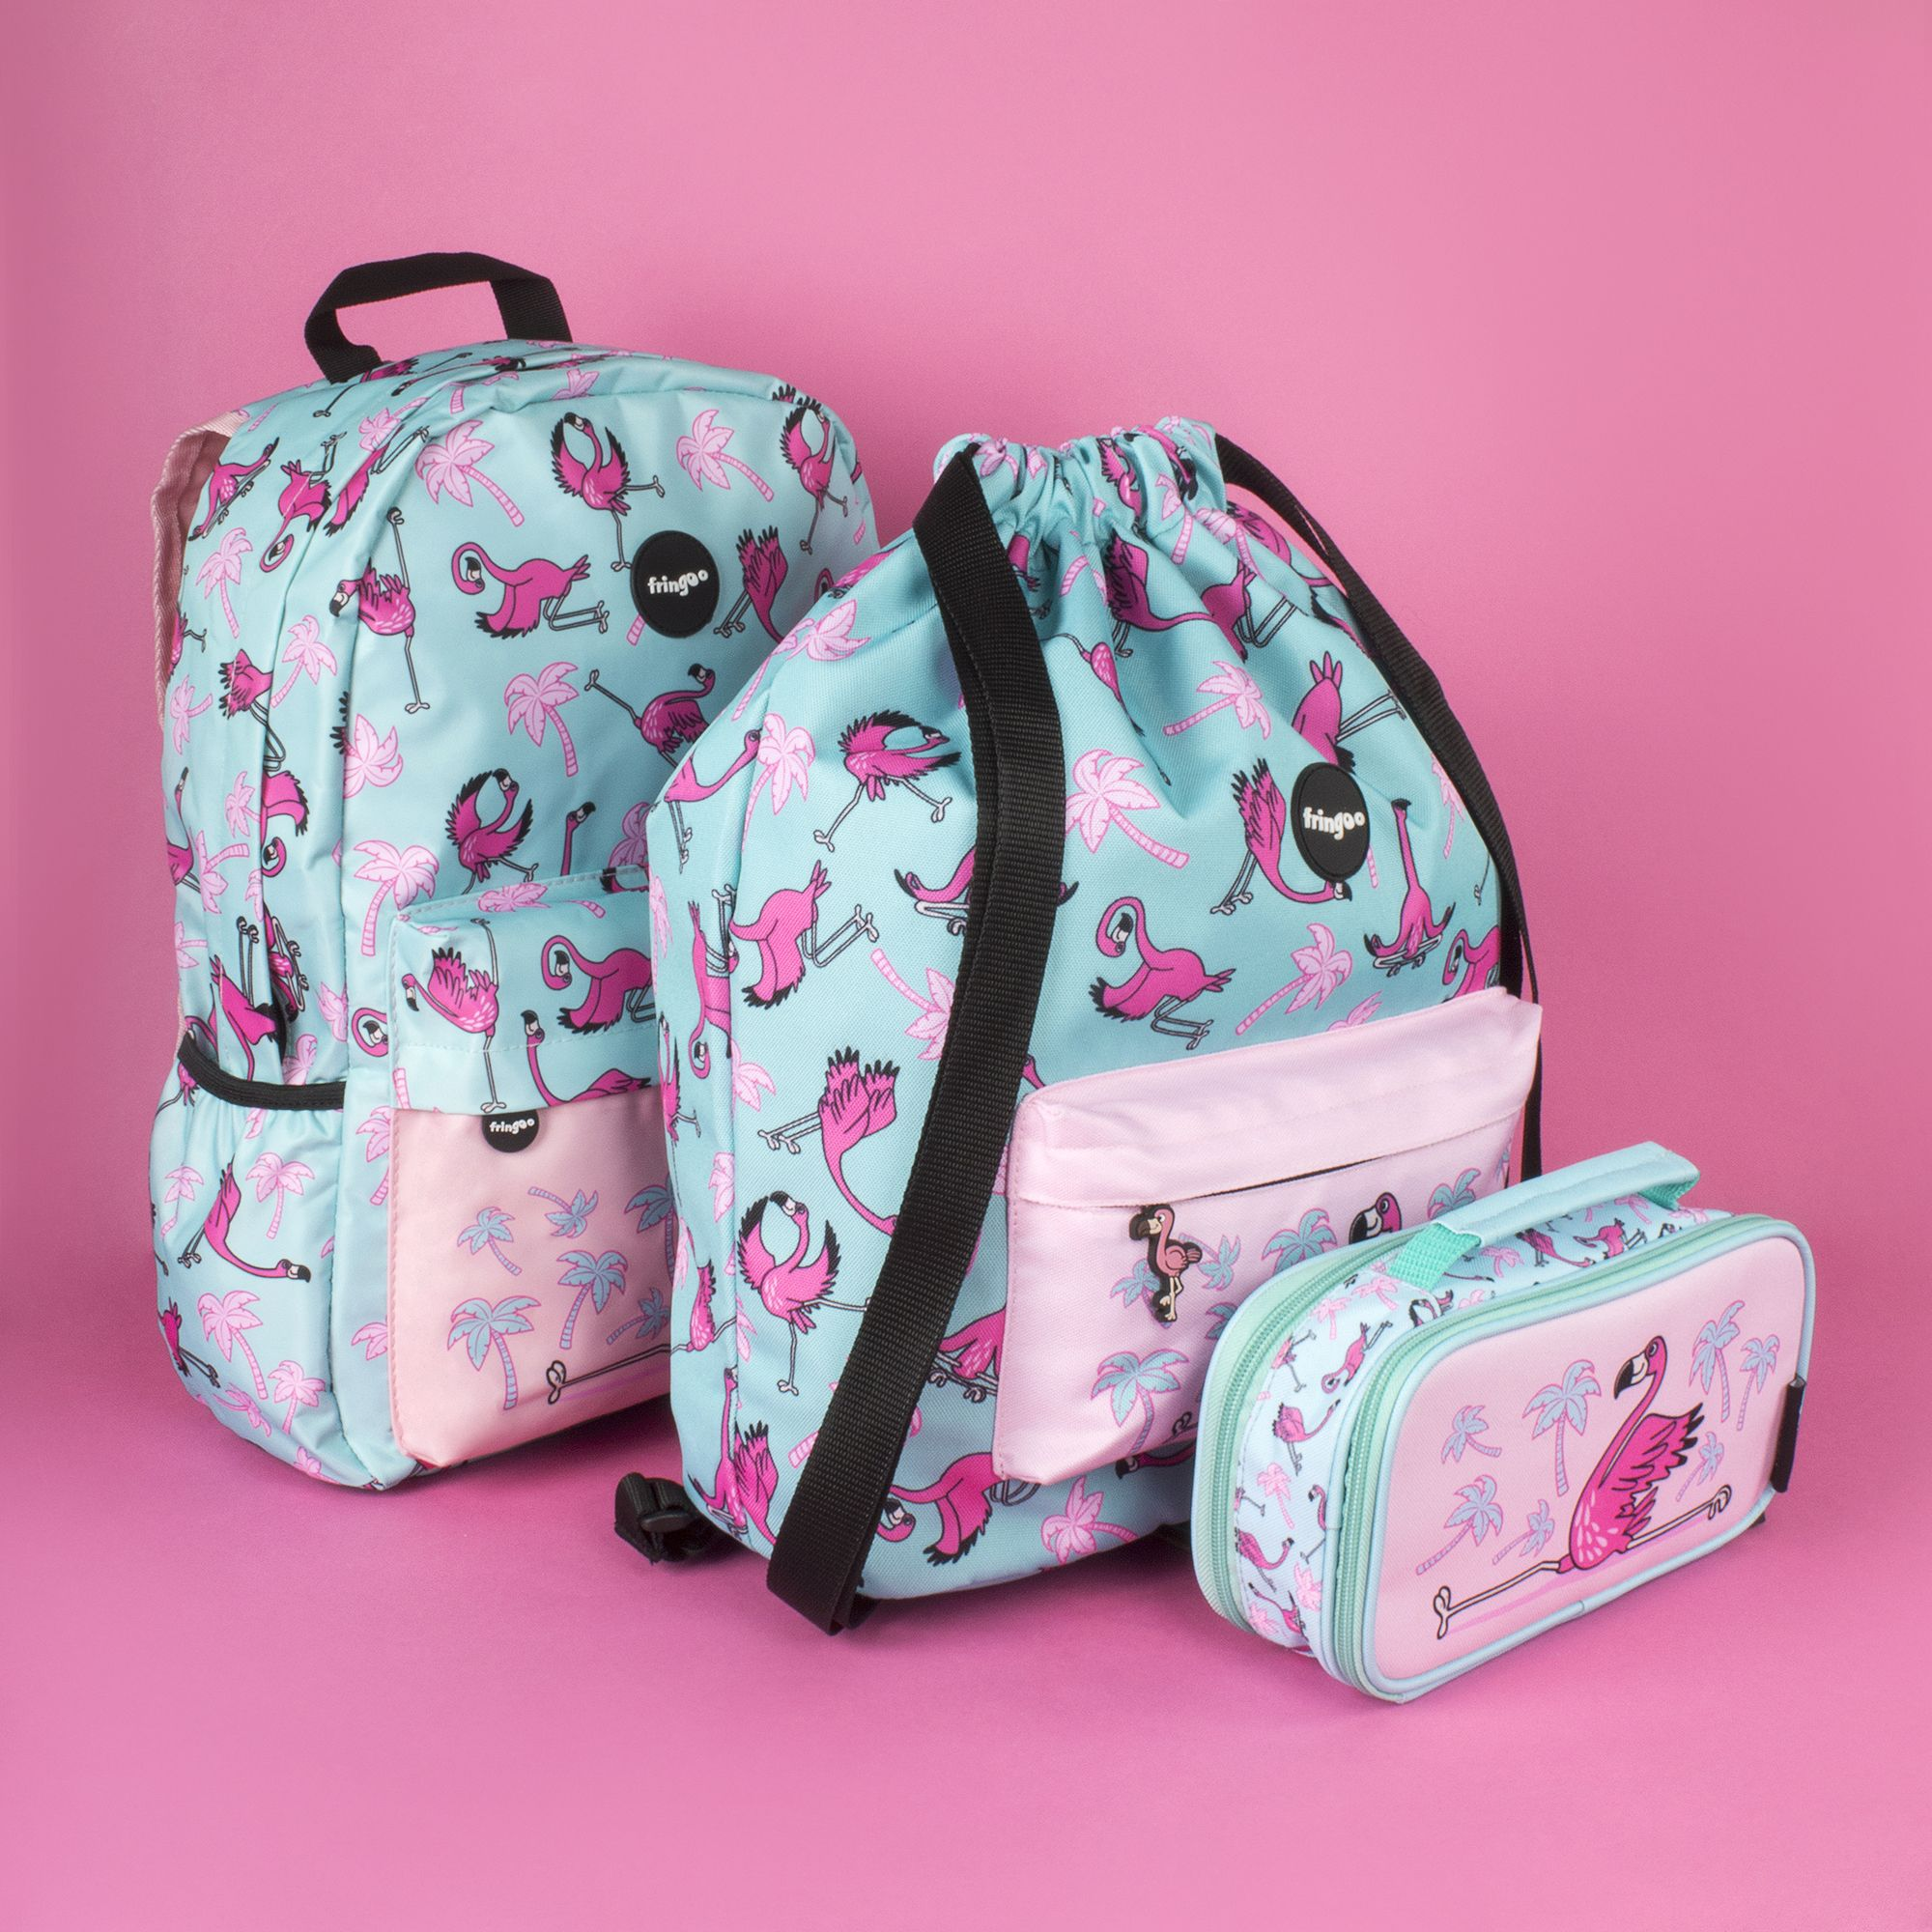 a9a79d68b63b It is all about Fringoo flamingo matching sets. Our waterproof kids  backpacks